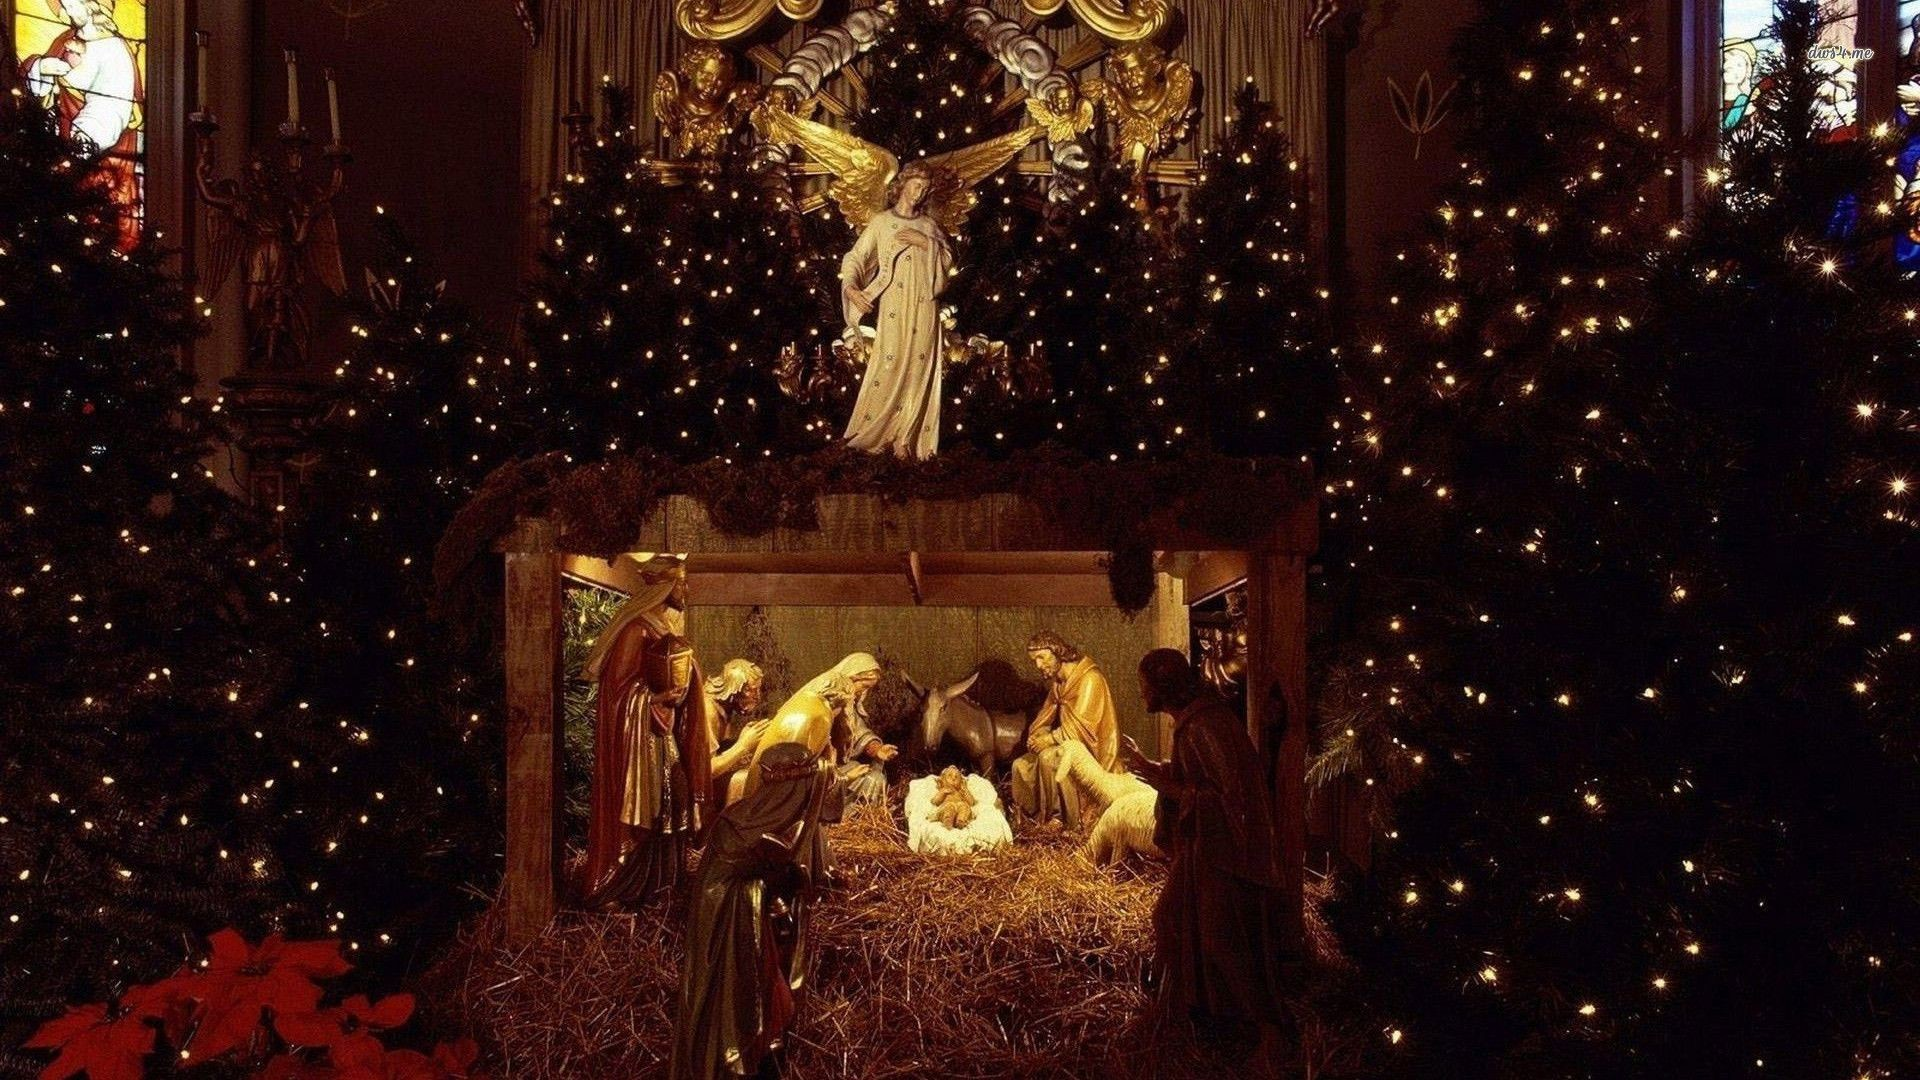 … Awesome Nativity Scene Pictures Wallpaper of awesome full screen HD  wallpapers to download for free.